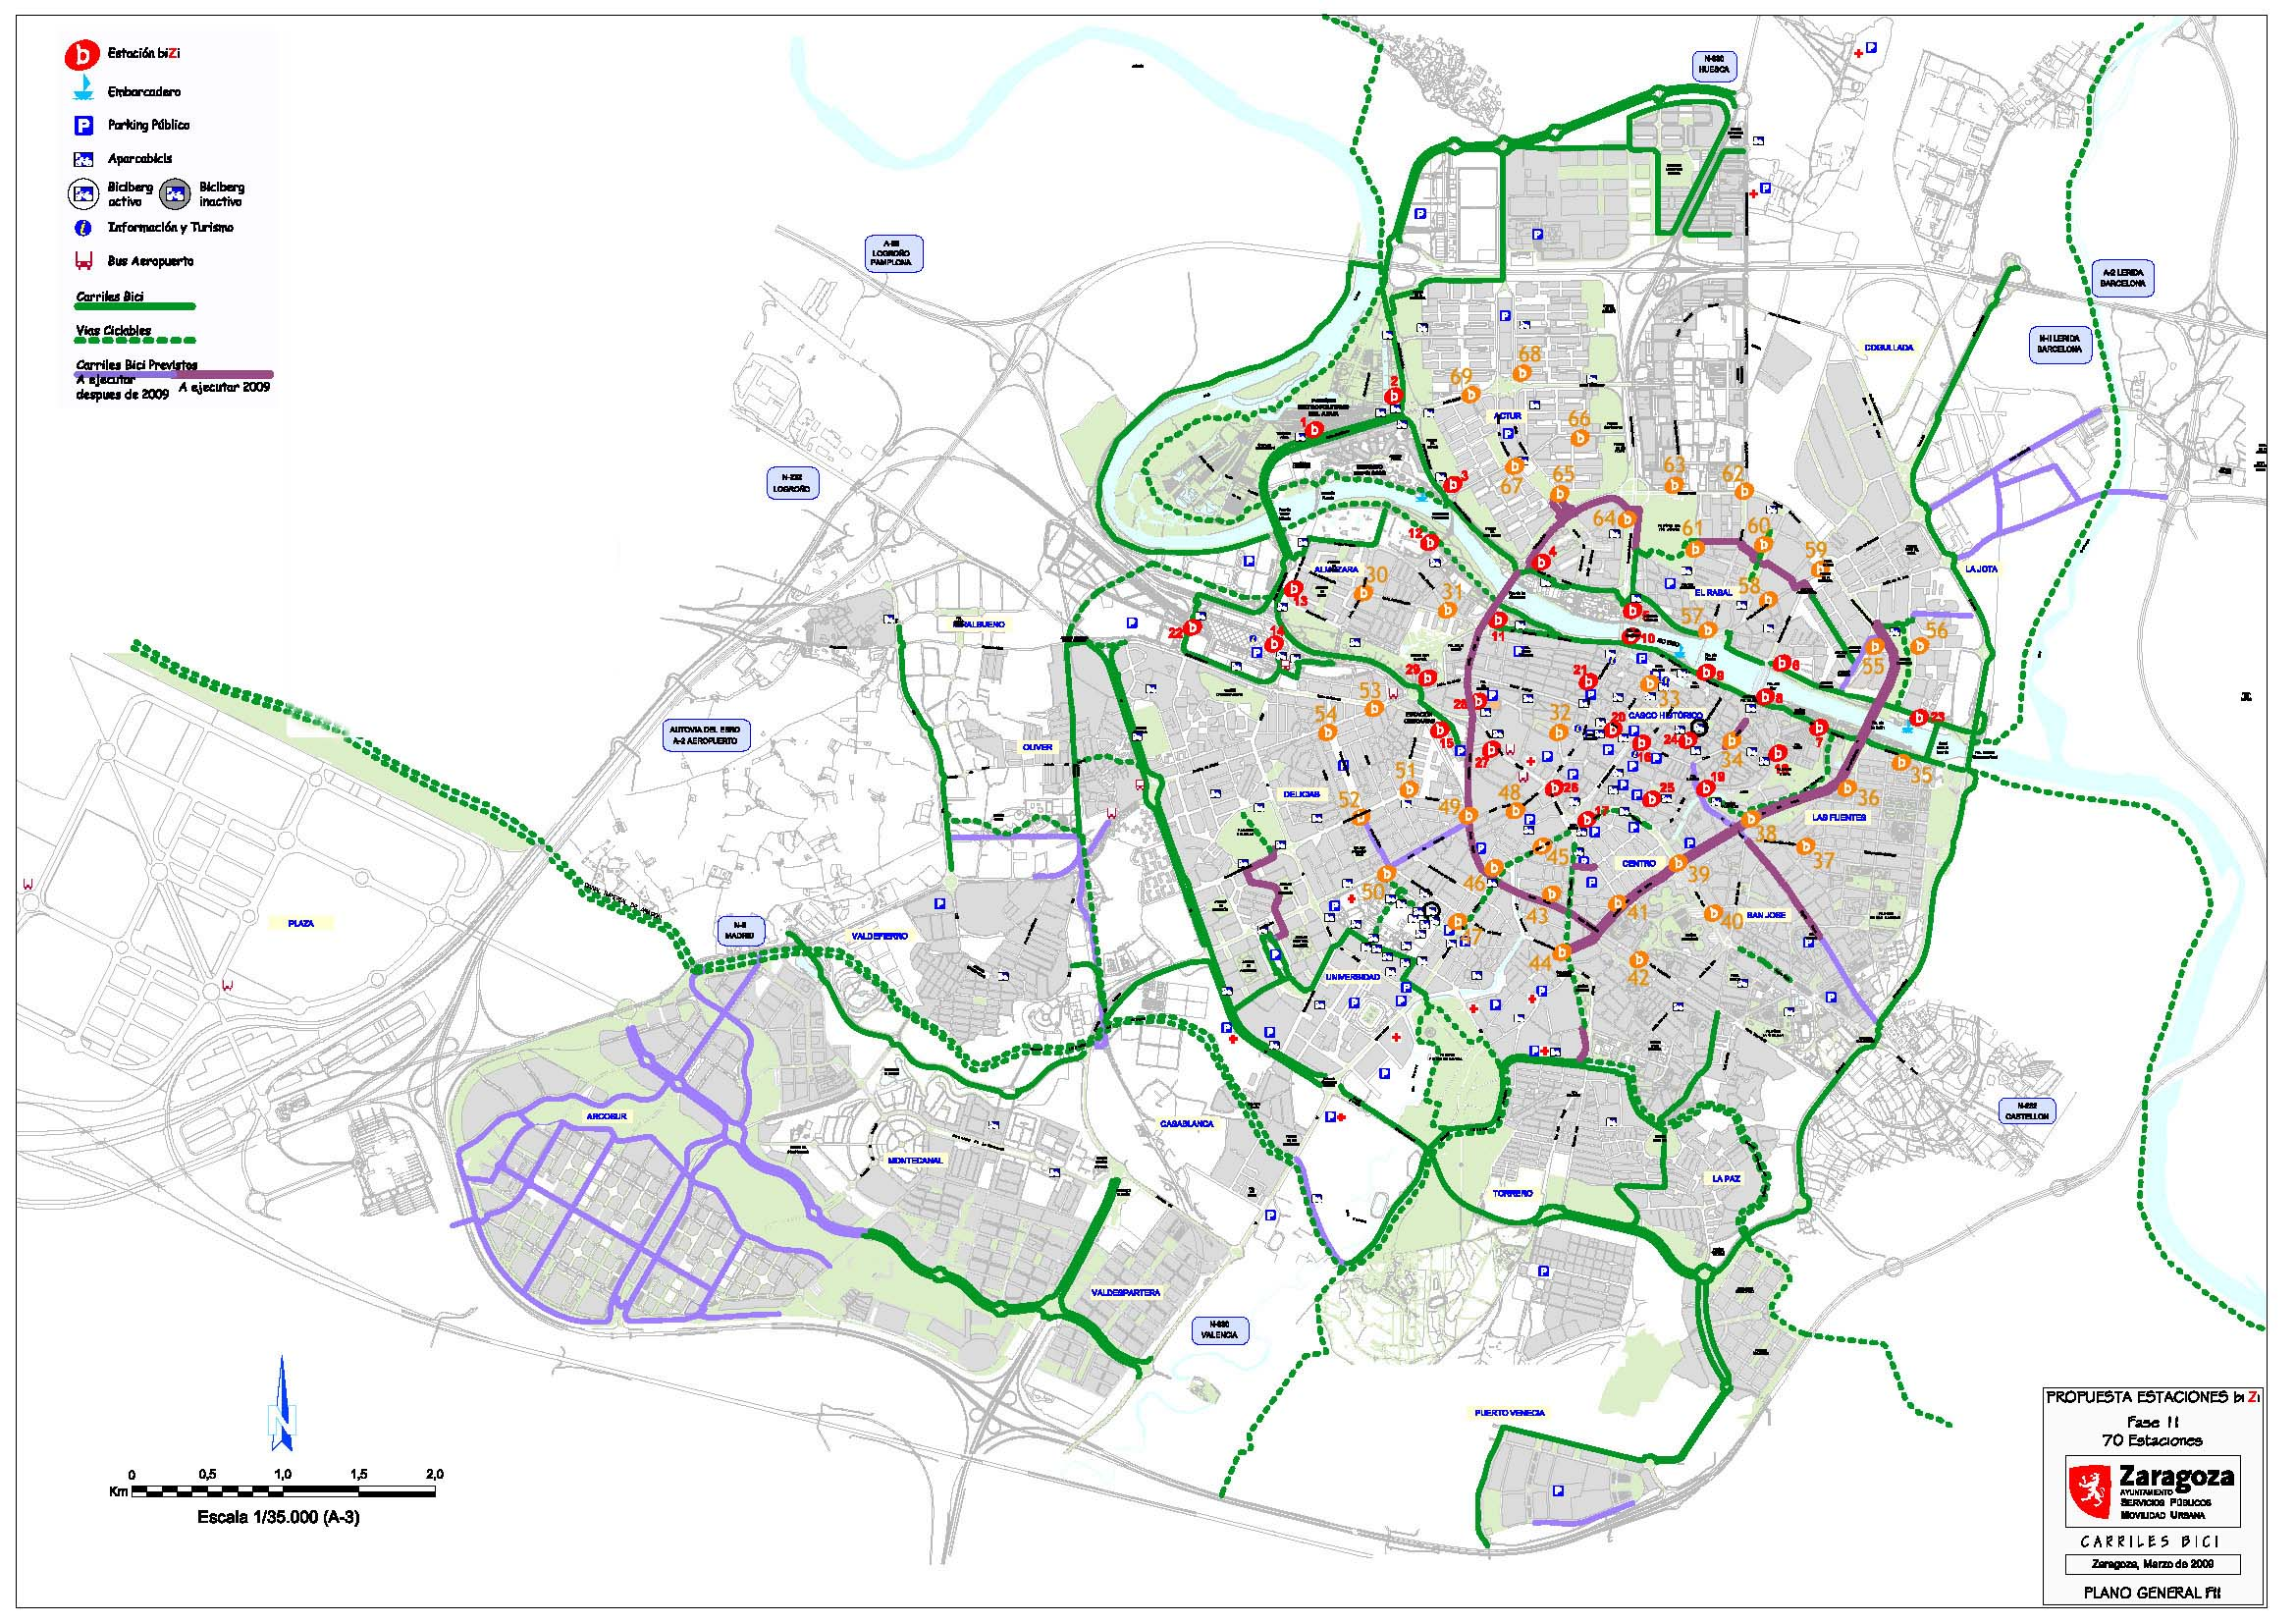 Zaragoza cycle routes network 2009